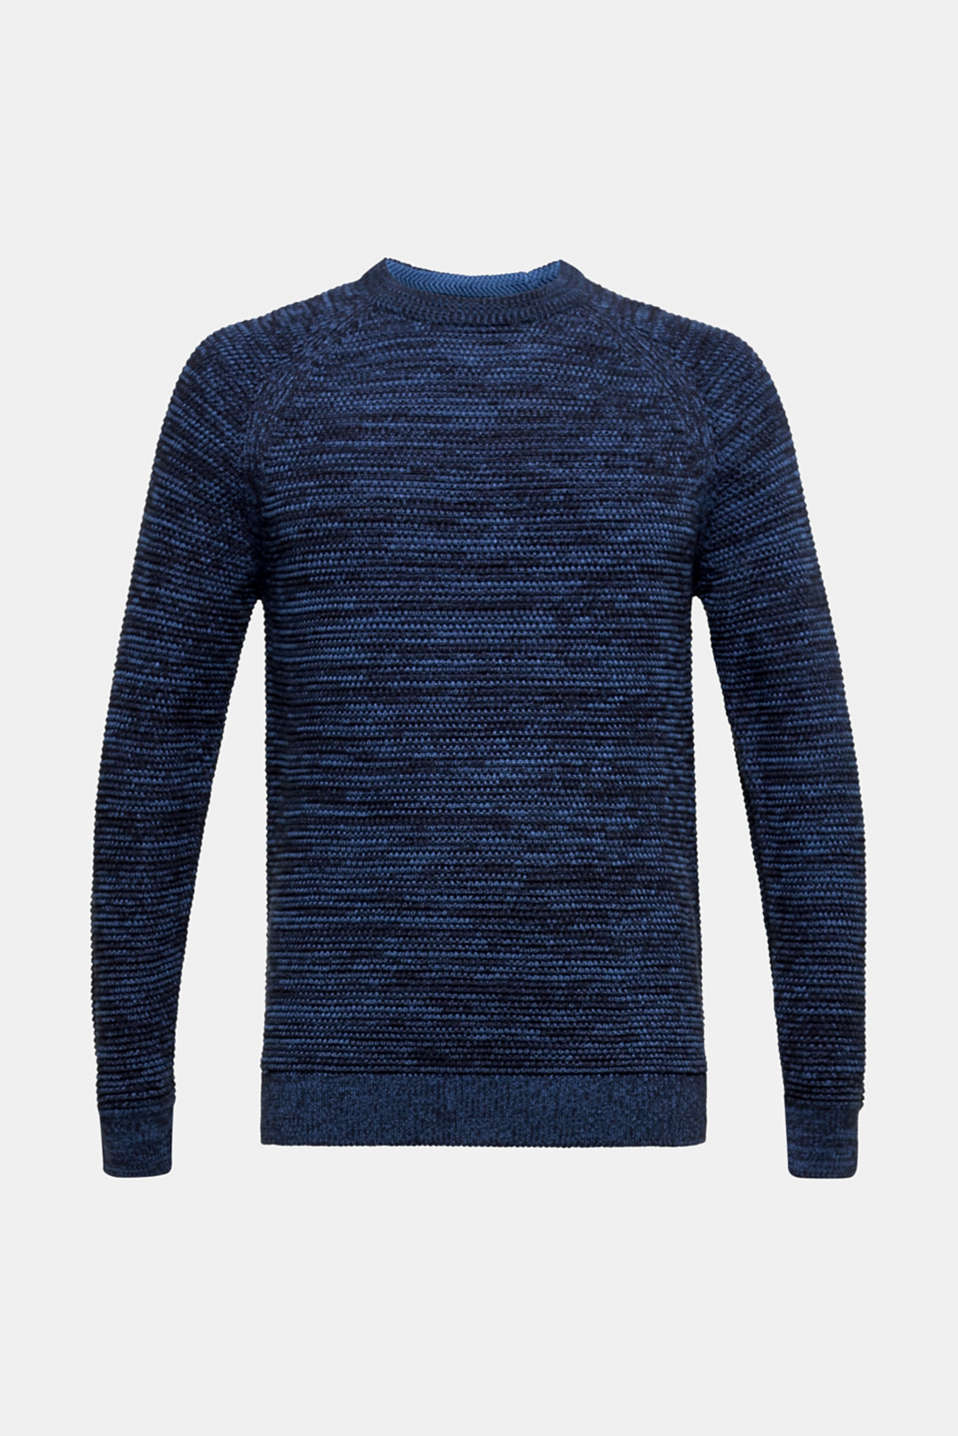 Sweaters, NAVY 5, detail image number 7